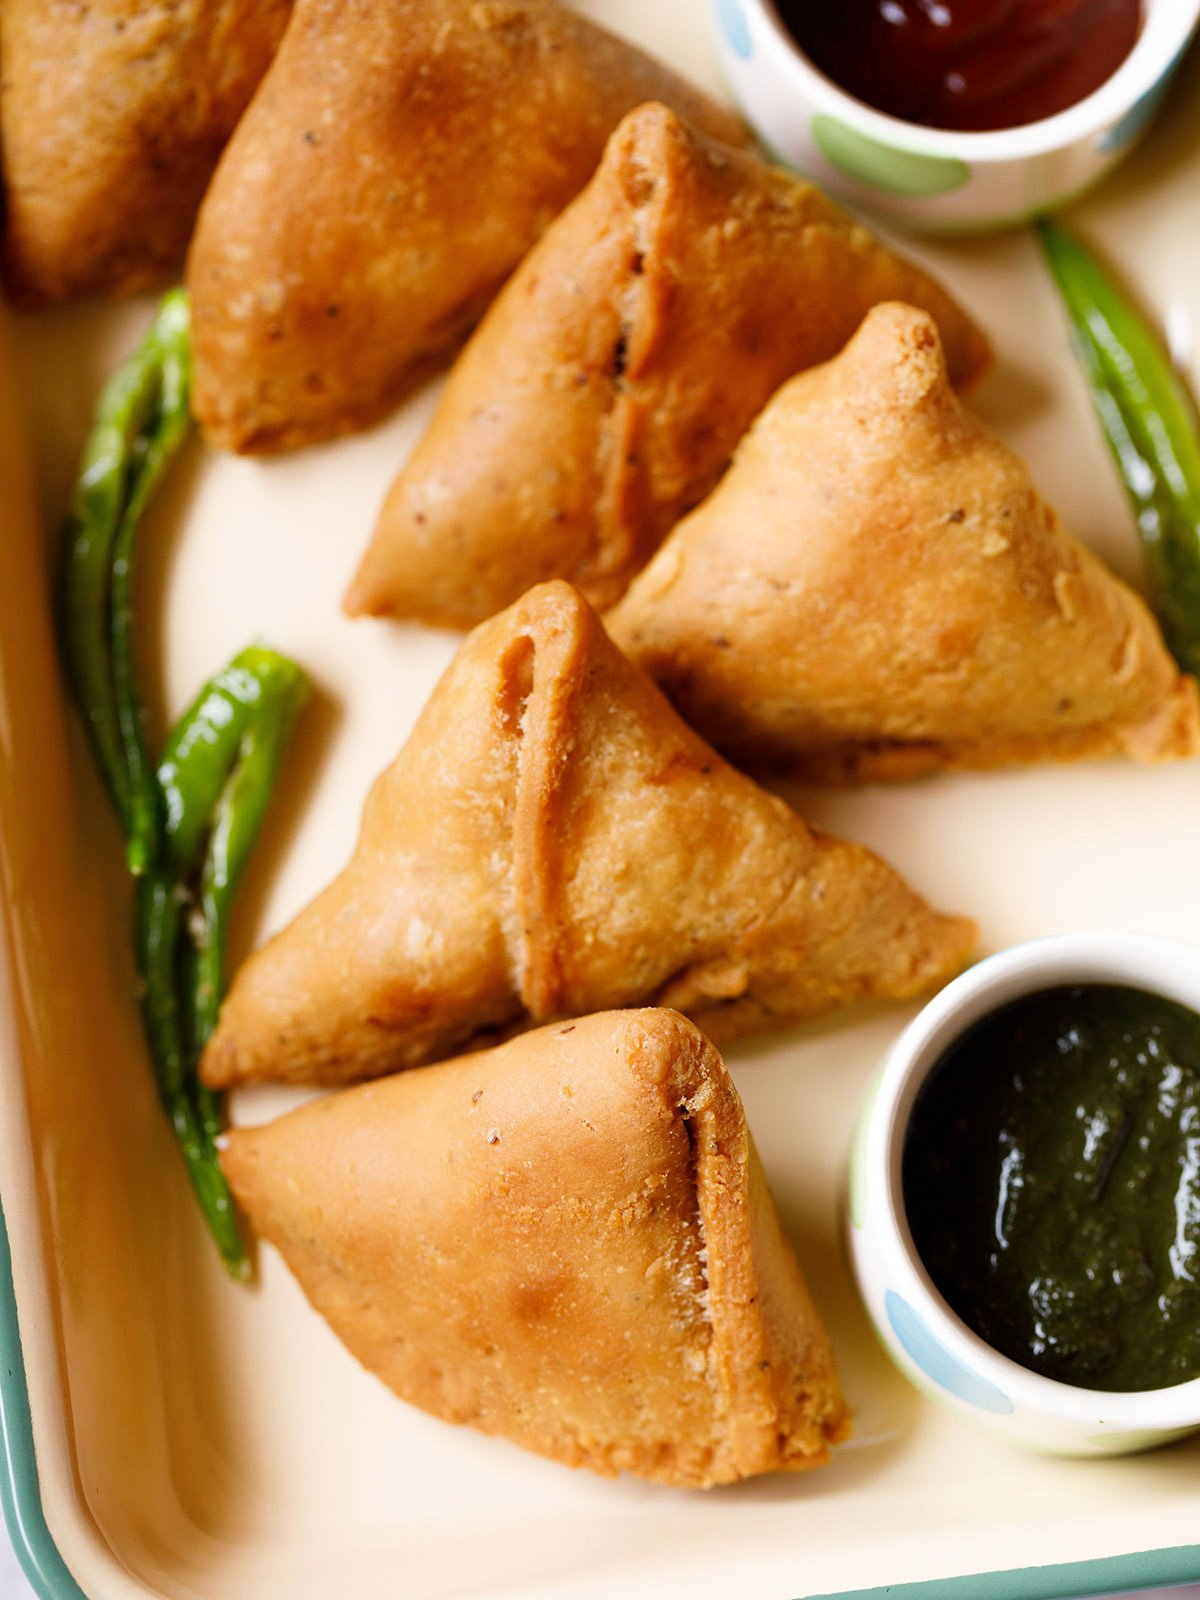 samosa kept in a tray with a bowl of green chutney and some salted fried green chillies